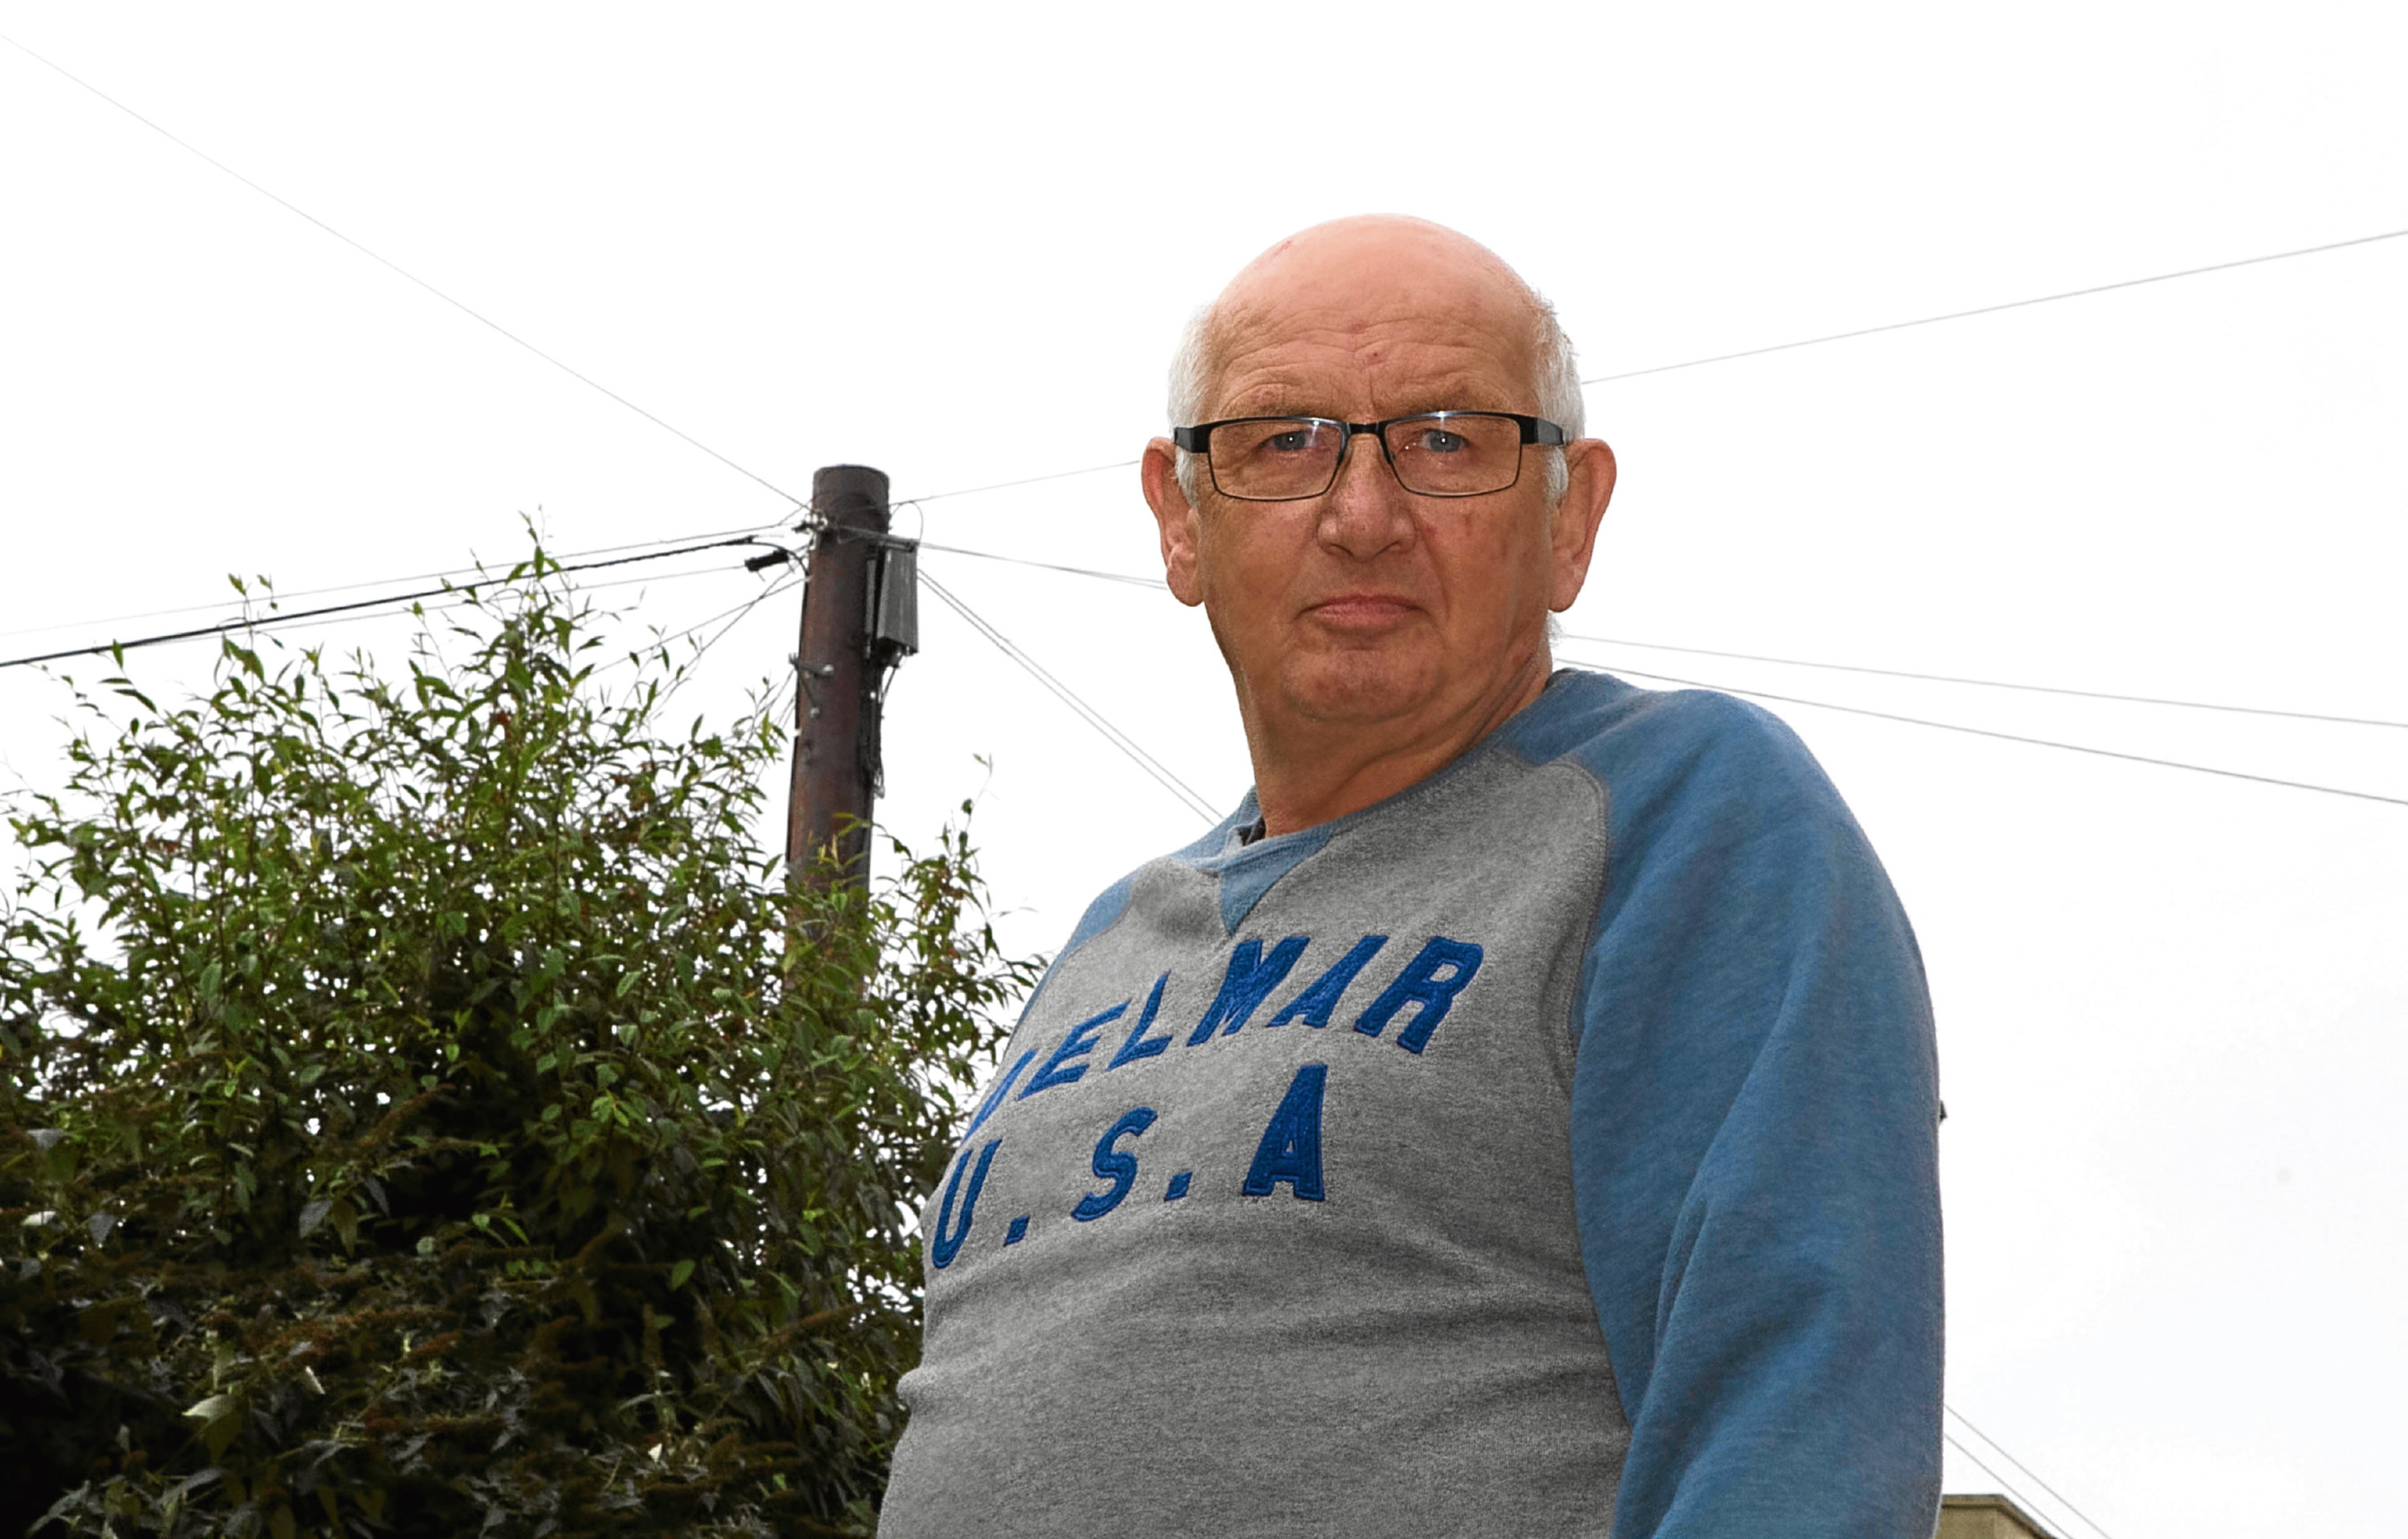 Sandy Massie needed a new phone line put in place in his back garden (although the pole was actually situated in a neighbour's garden)